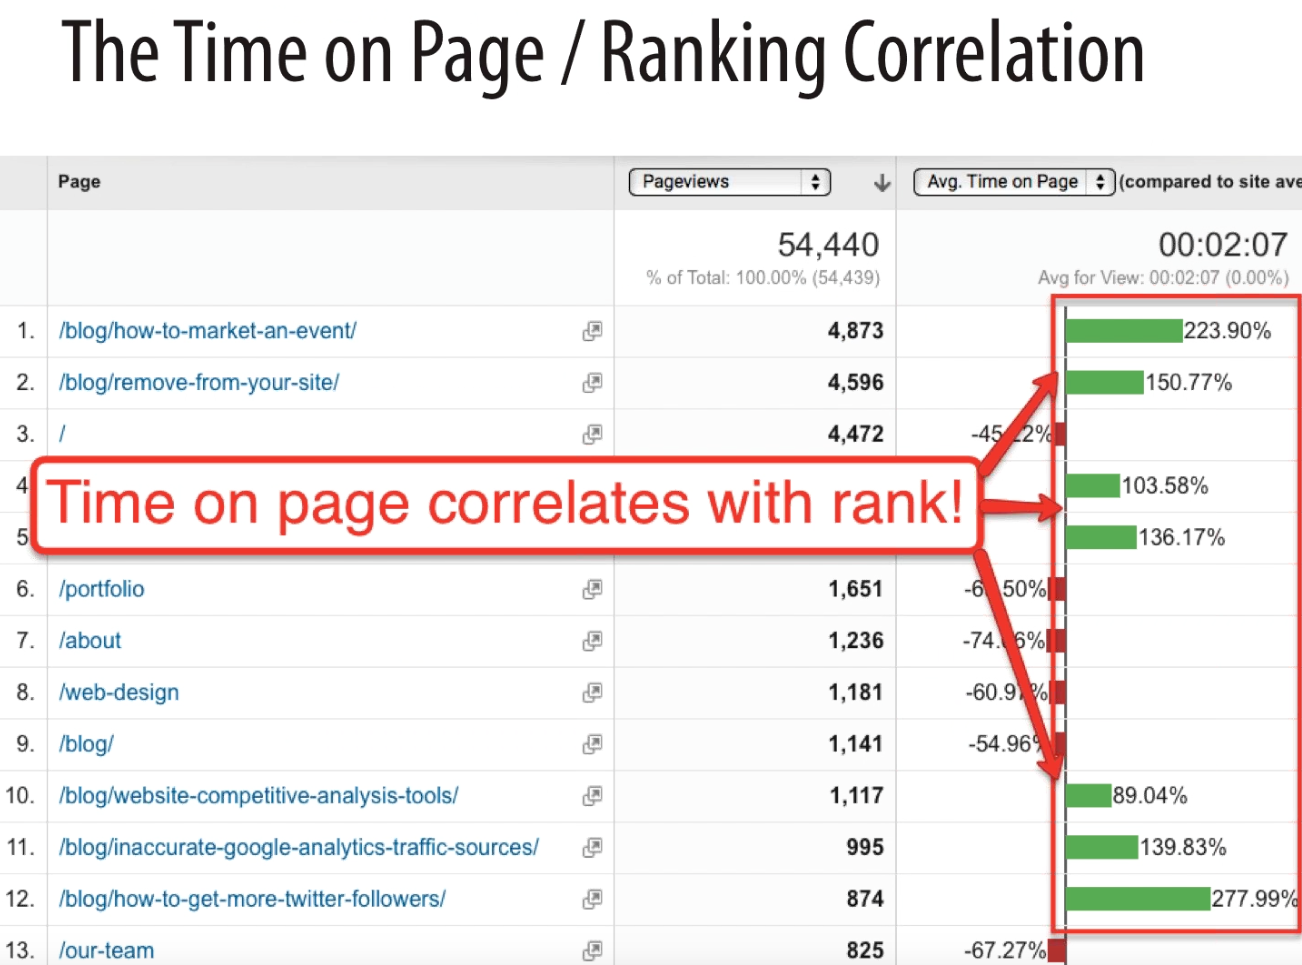 Time on page correlates with user interaction signals